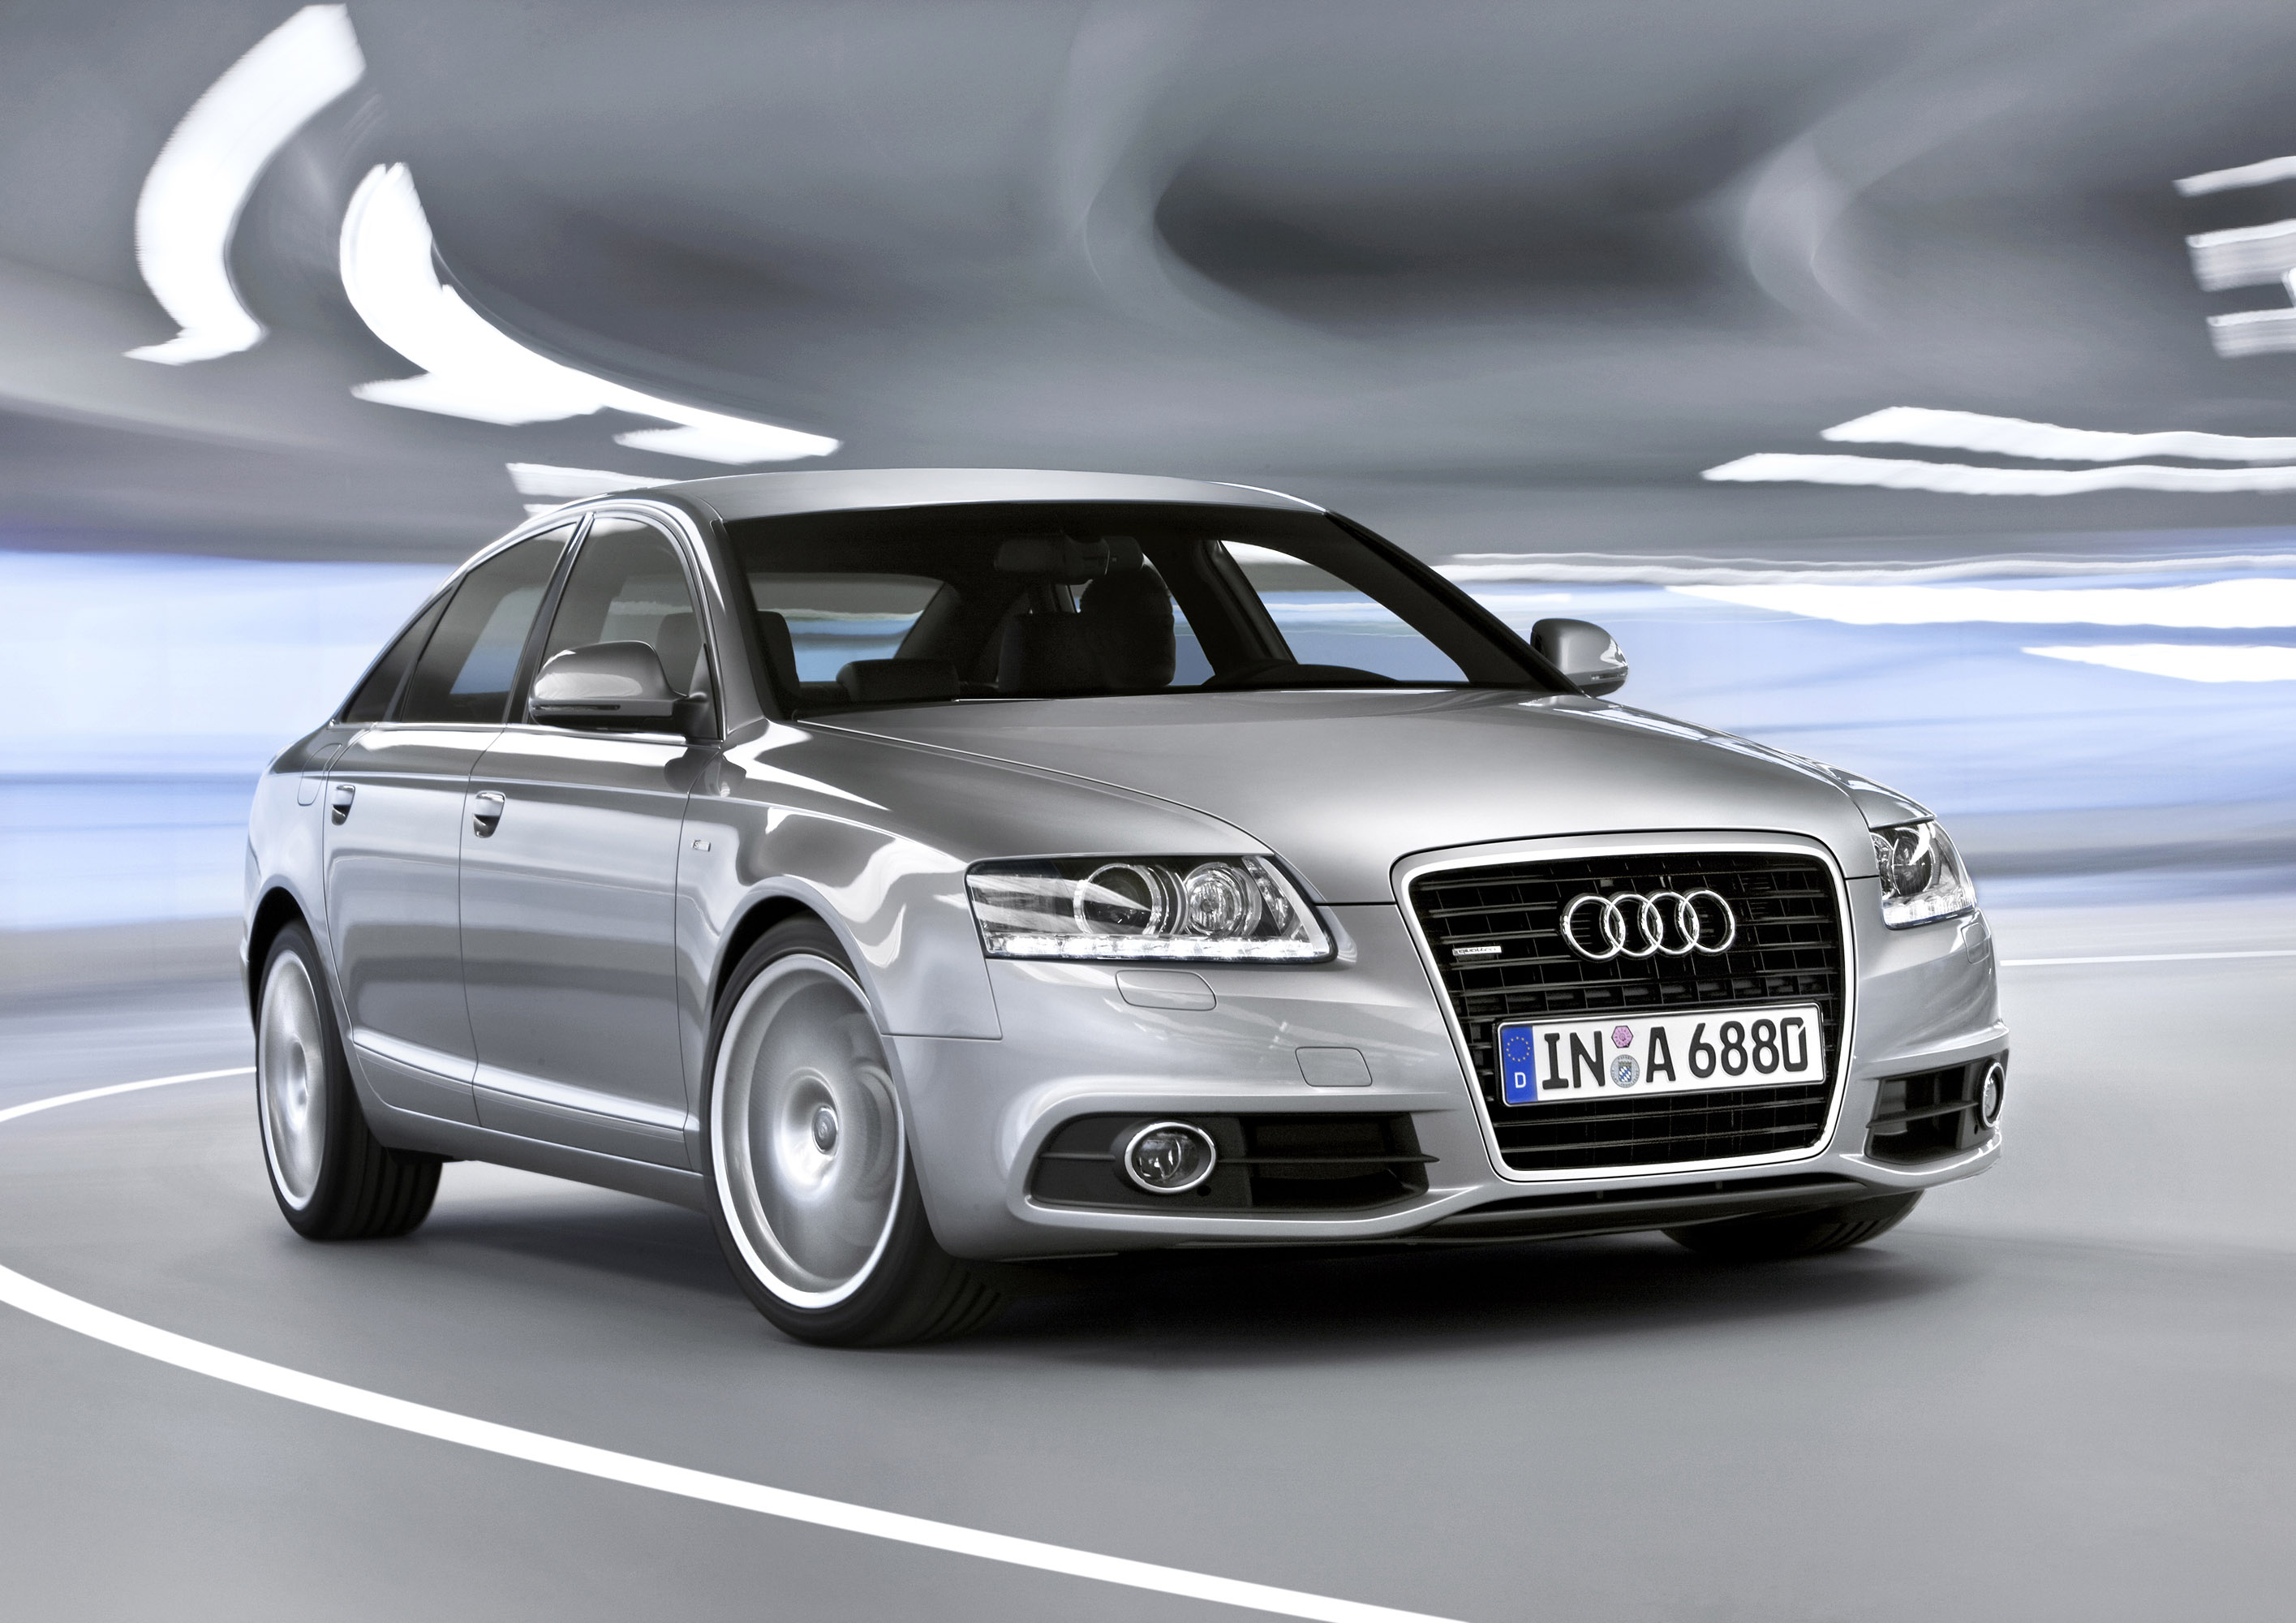 Audi S6 0 60 >> 2009 Audi A6/S6 Product Improvement